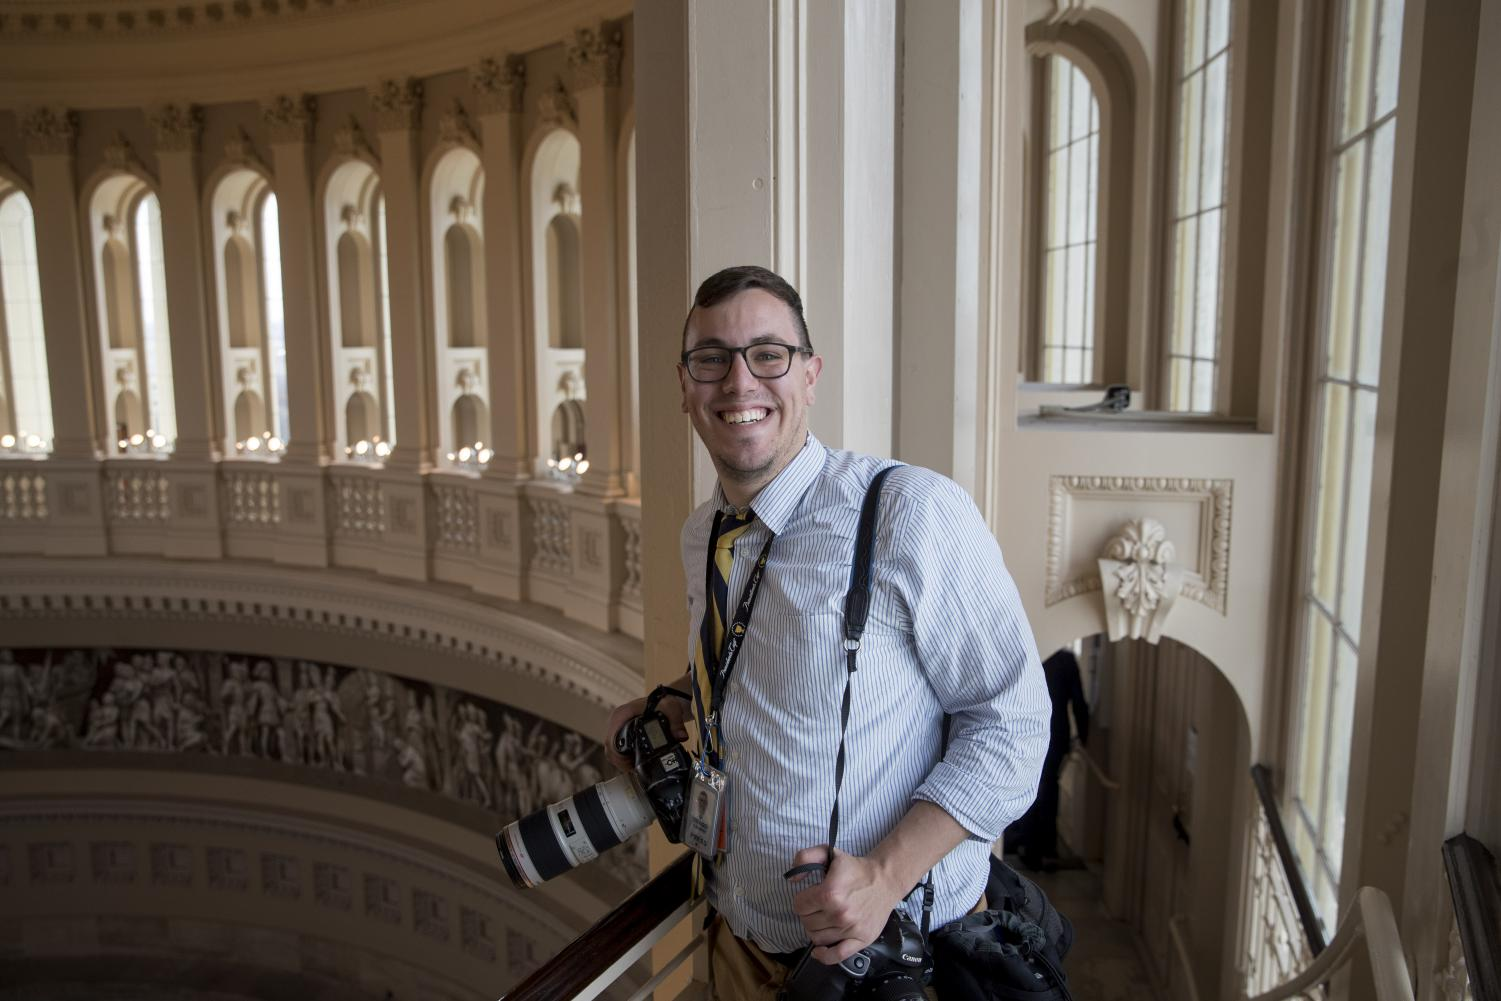 DC-based photojournalist selected as 2020 spring conference keynote speaker